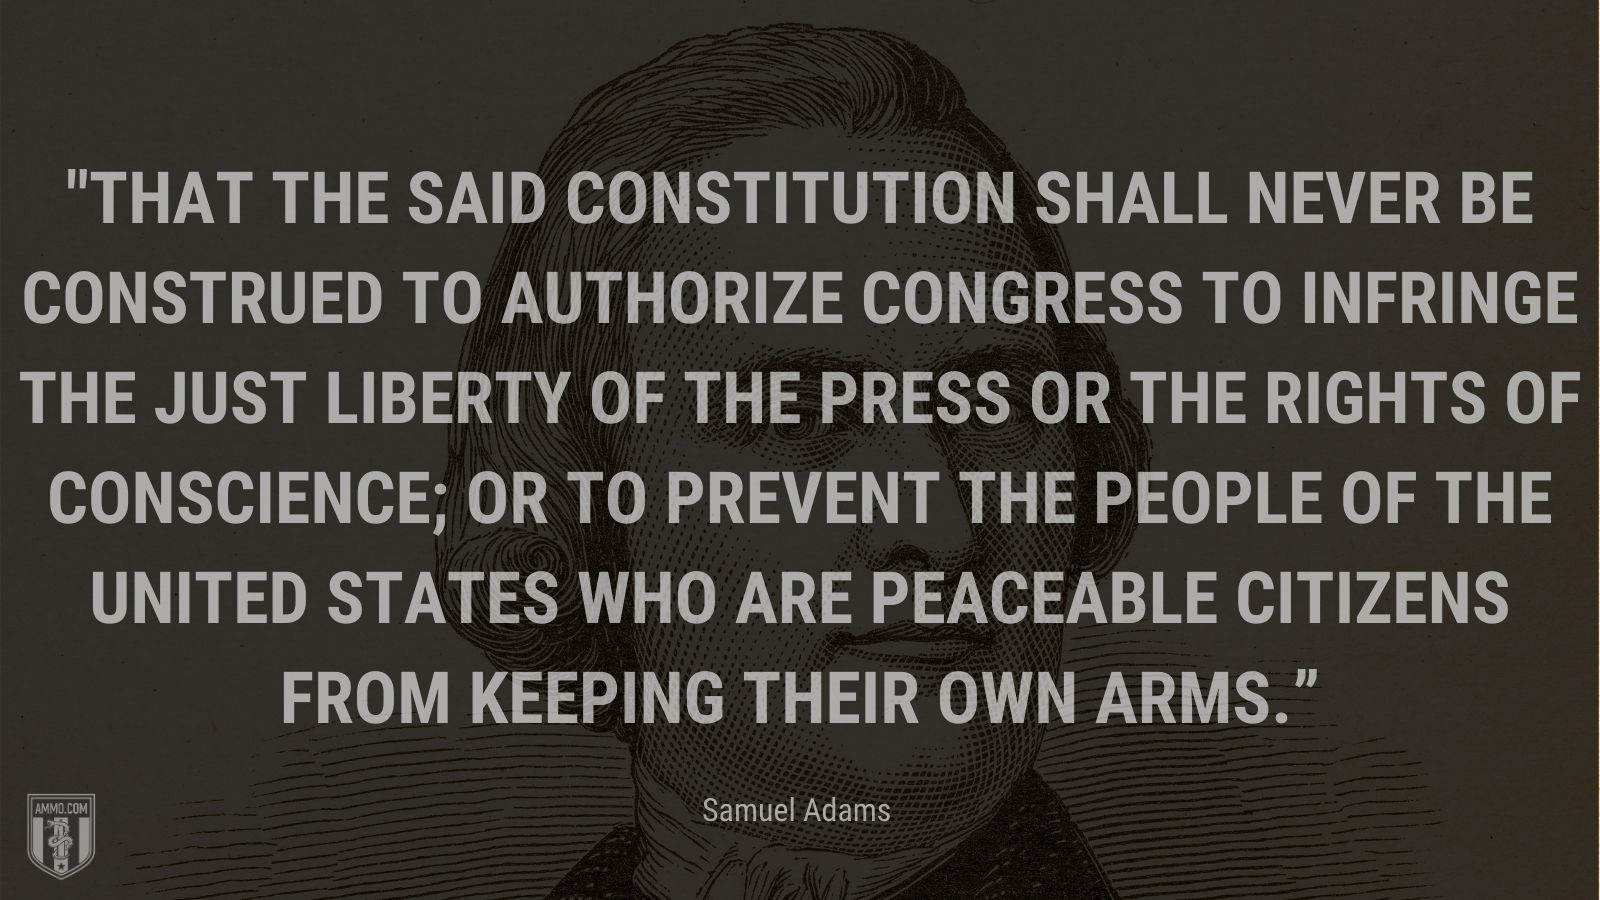 """""""That the said Constitution shall never be construed to authorize Congress to infringe the just liberty of the press or the rights of conscience; or to prevent the people of the United states who are peaceable citizens from keeping their own arms."""" - Samuel Adams"""